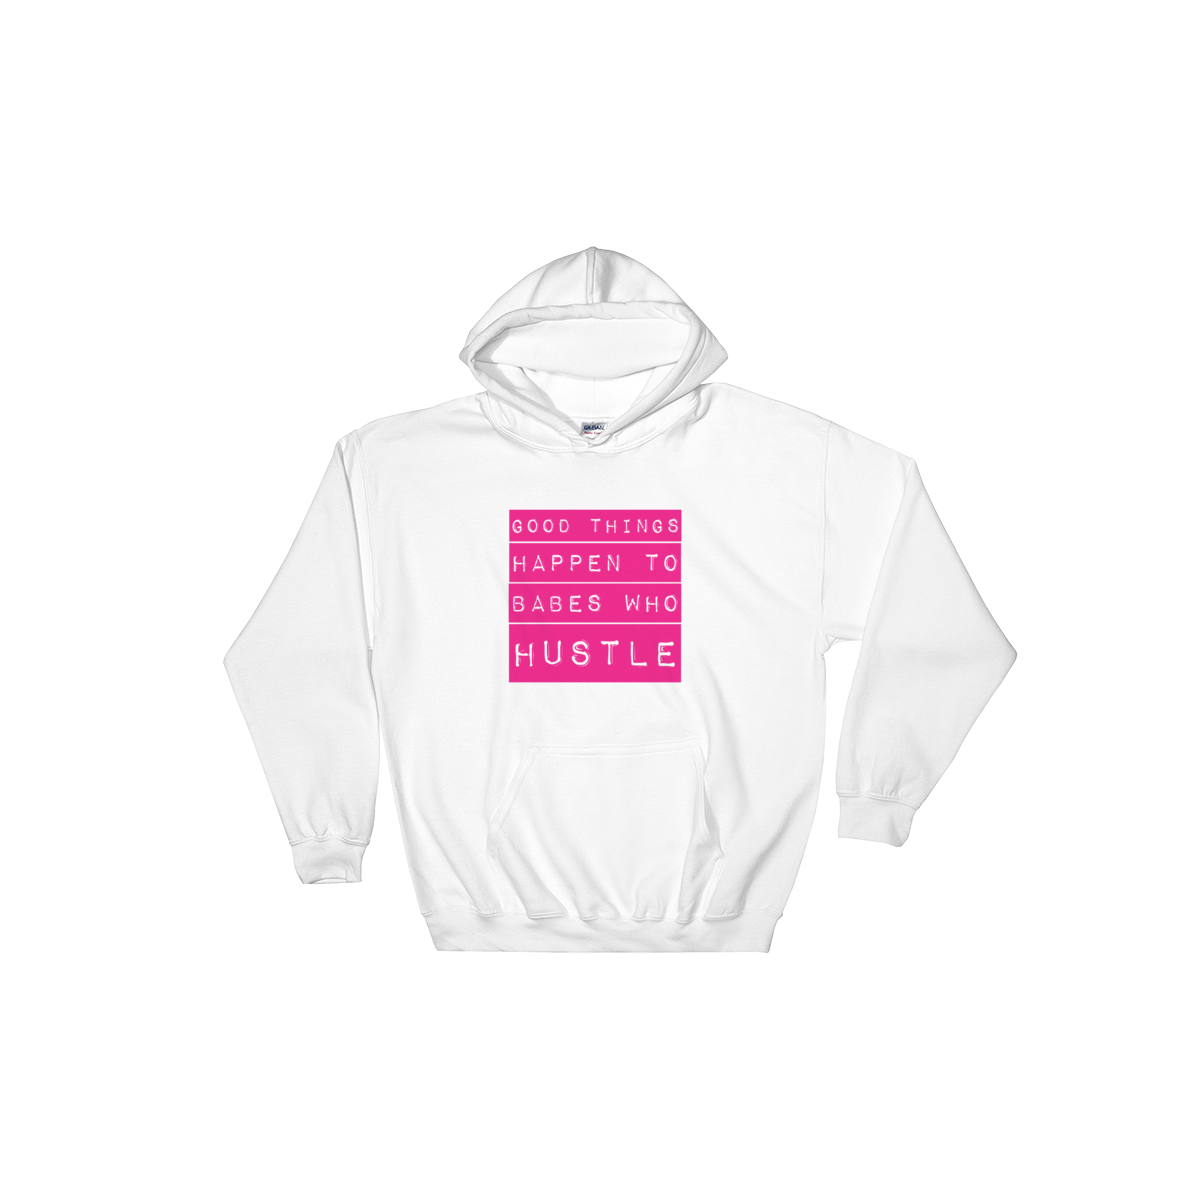 Babes That Hustle | Hooded Sweatshirt